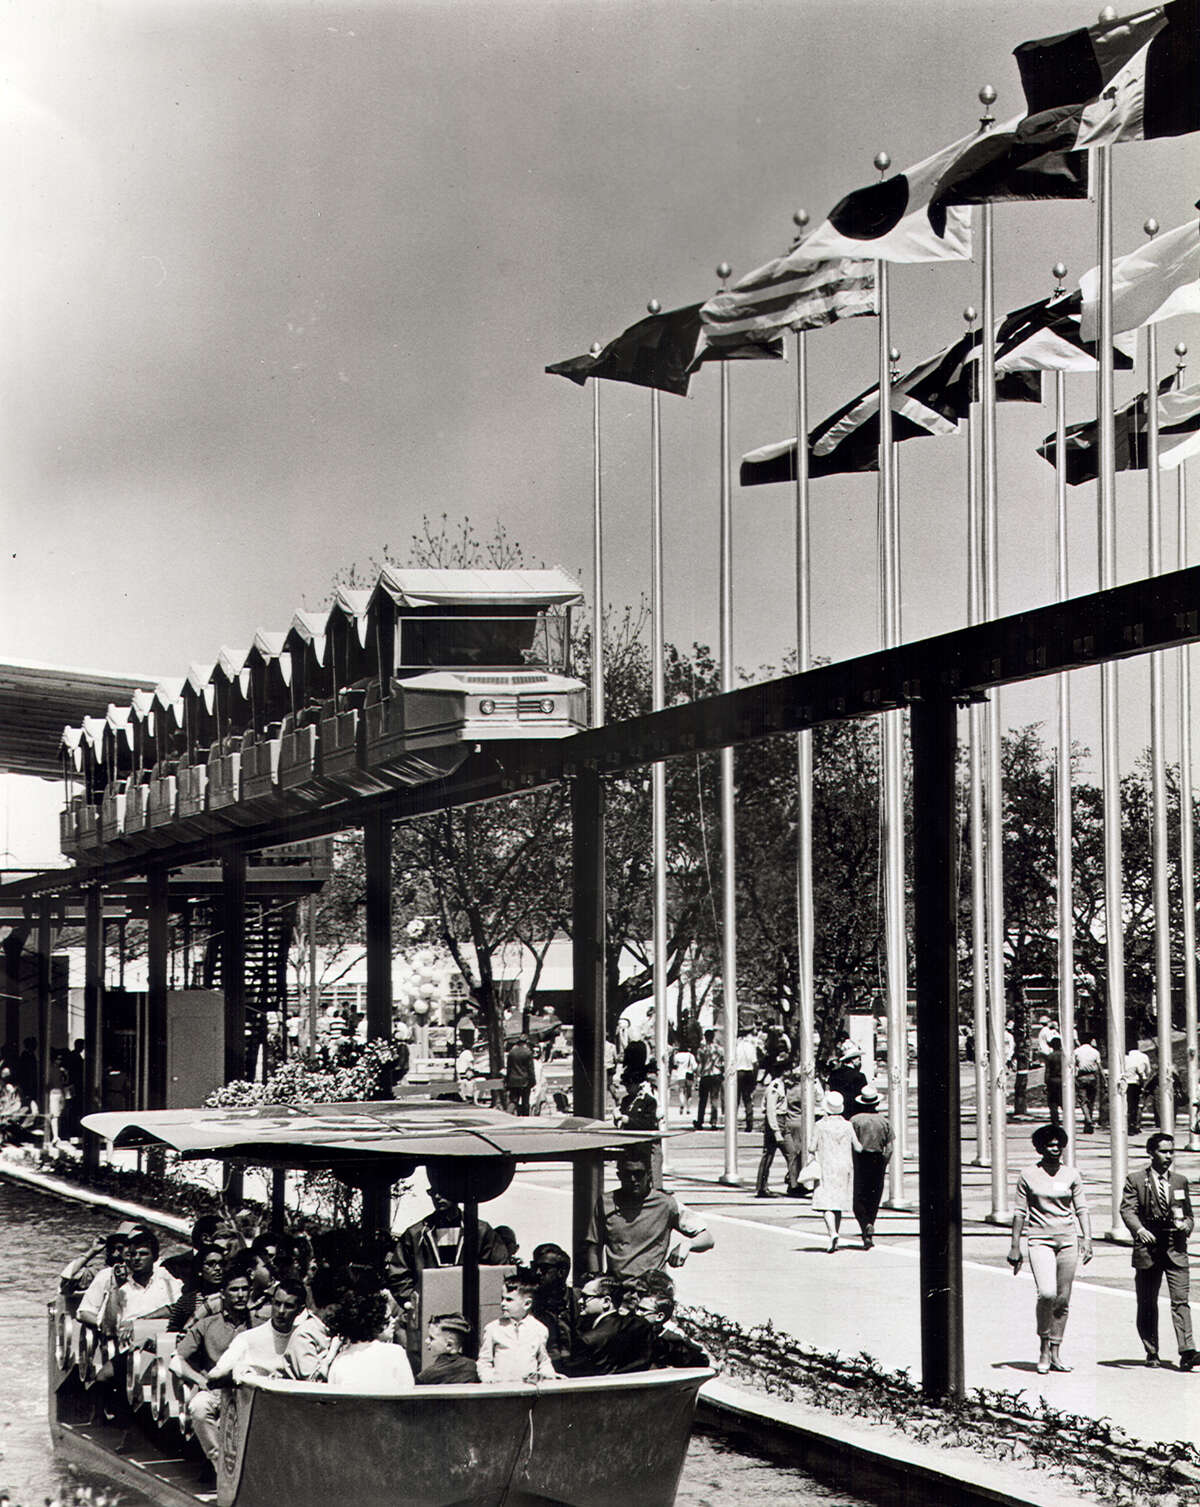 The mini monorail is pictured during HemisFair. 1968.